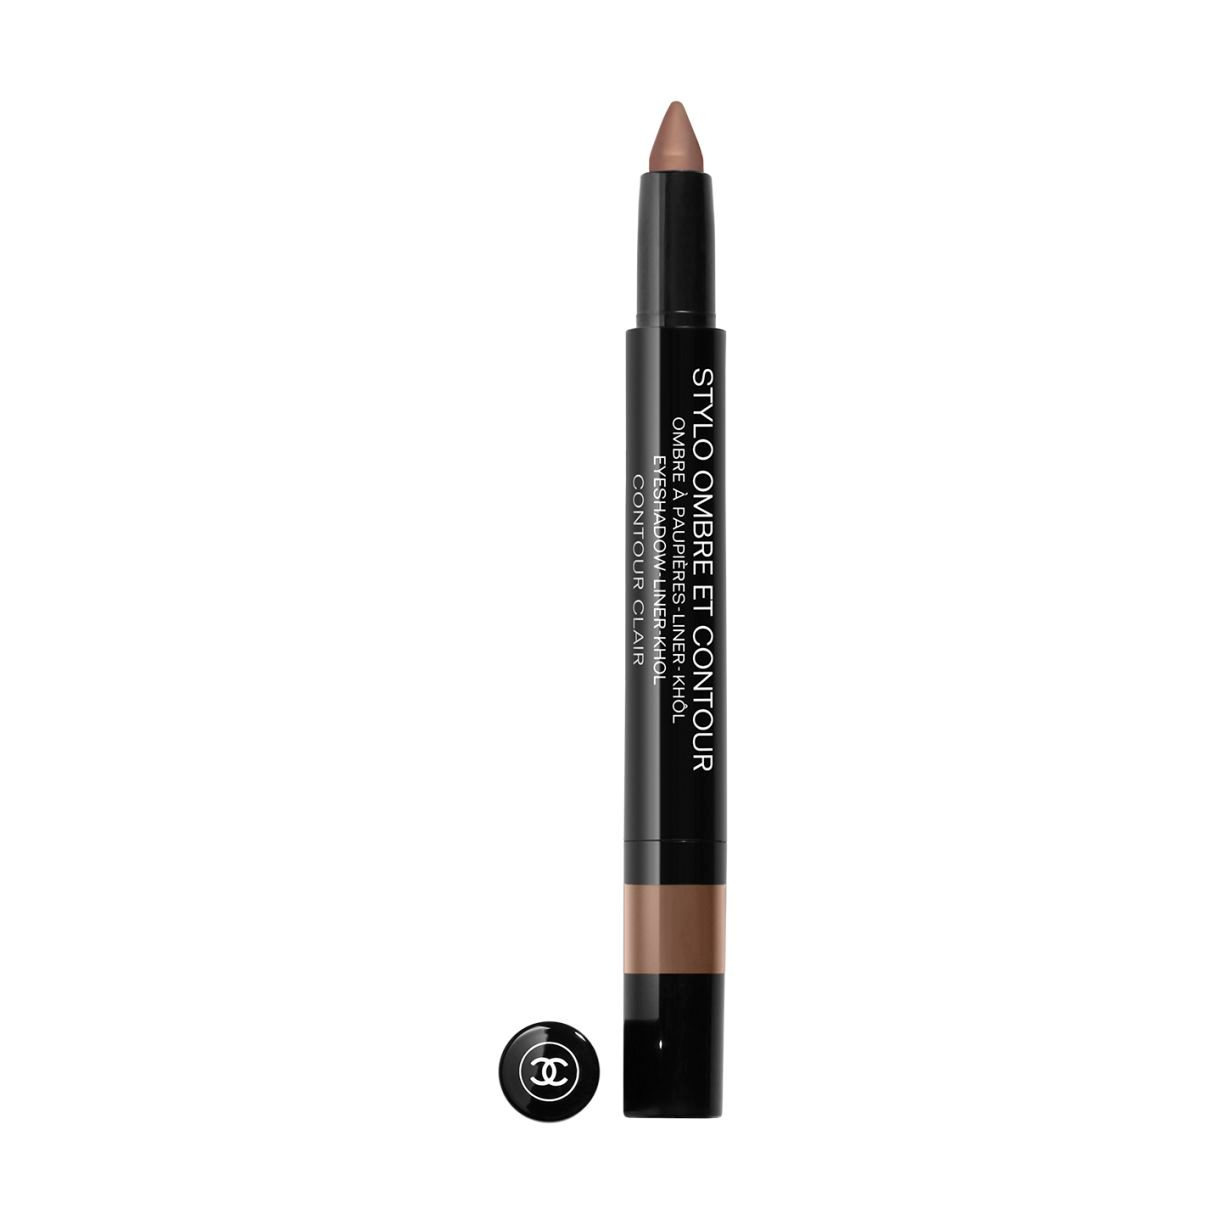 STYLO OMBRE ET CONTOUR With its medium-thick tip, STYLO OMBRE ET CONTOUR may be used as a kohl, liner or eyeshadow. In a few strokes, this 3-in-1 pen adorns your eyes according to your whims.